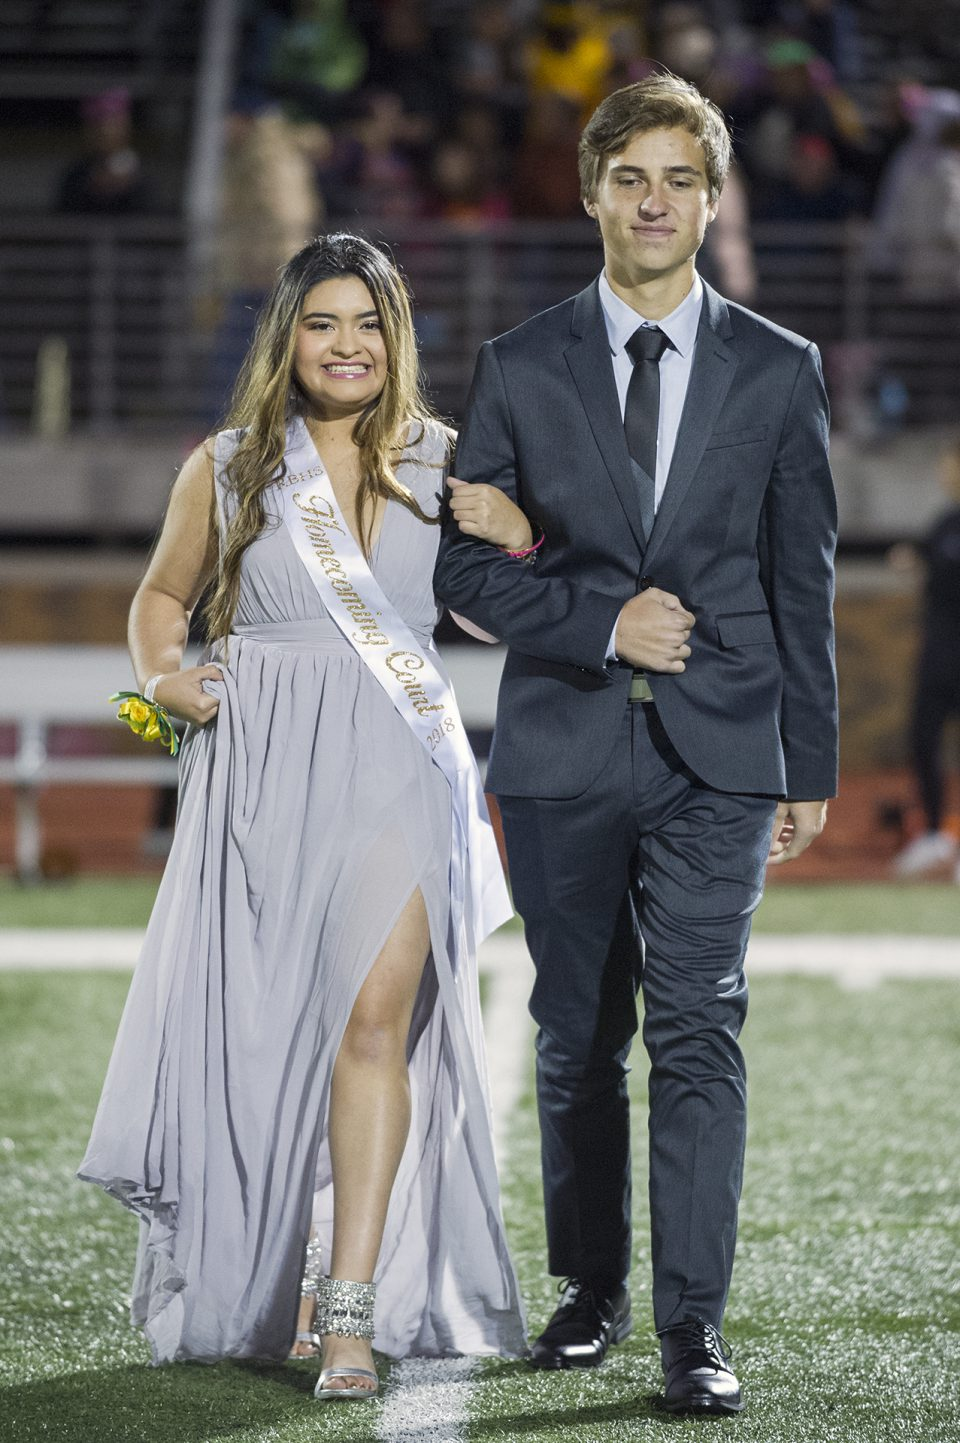 Homecoming queen candidate Anel Castro and escort Jacob Shaw. Photo by Maya Bell.